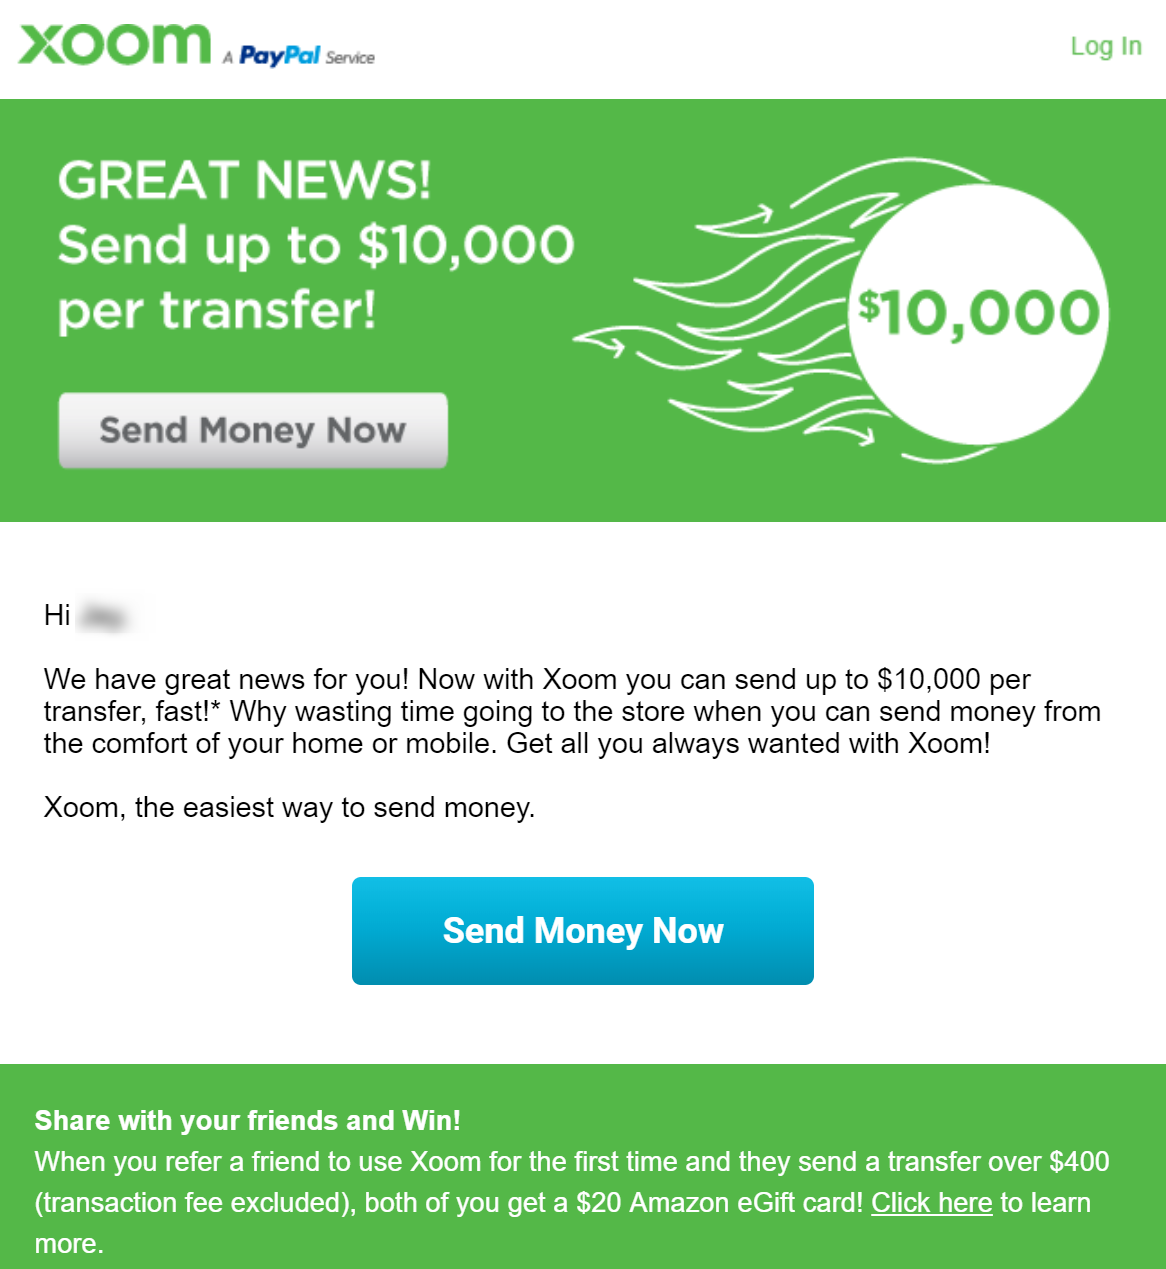 💵 Now you can send more with Xoom 💵 jay jk kang gmail com Gmail